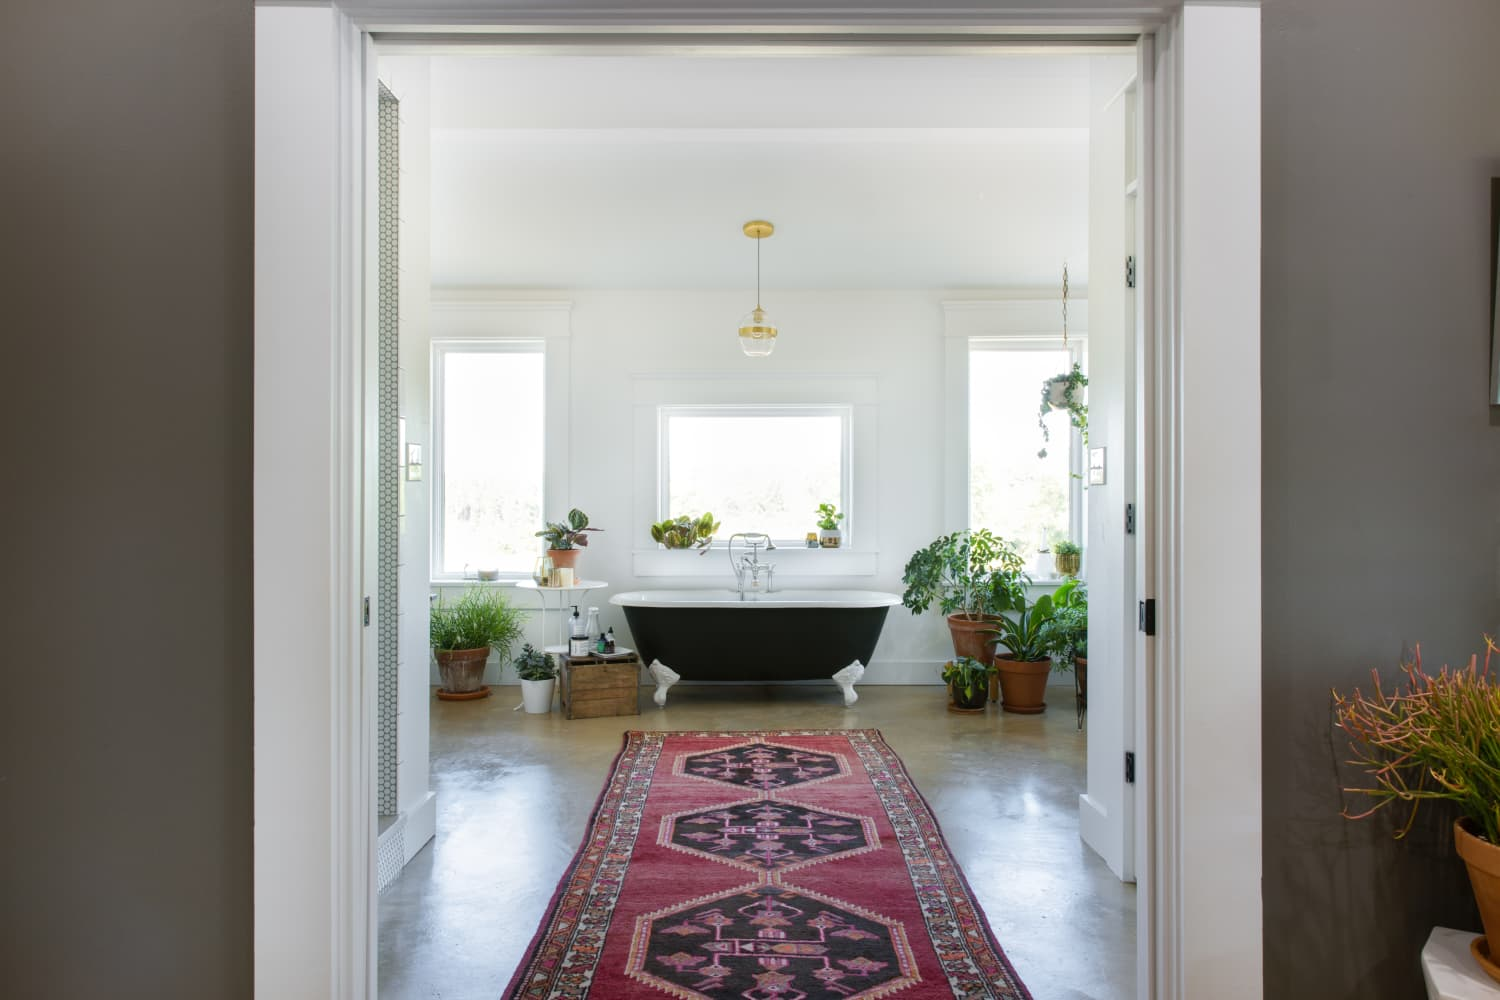 Use These Bathroom Decorating Ideas For Your Home: These Aren't Your Grandma's Bathmats